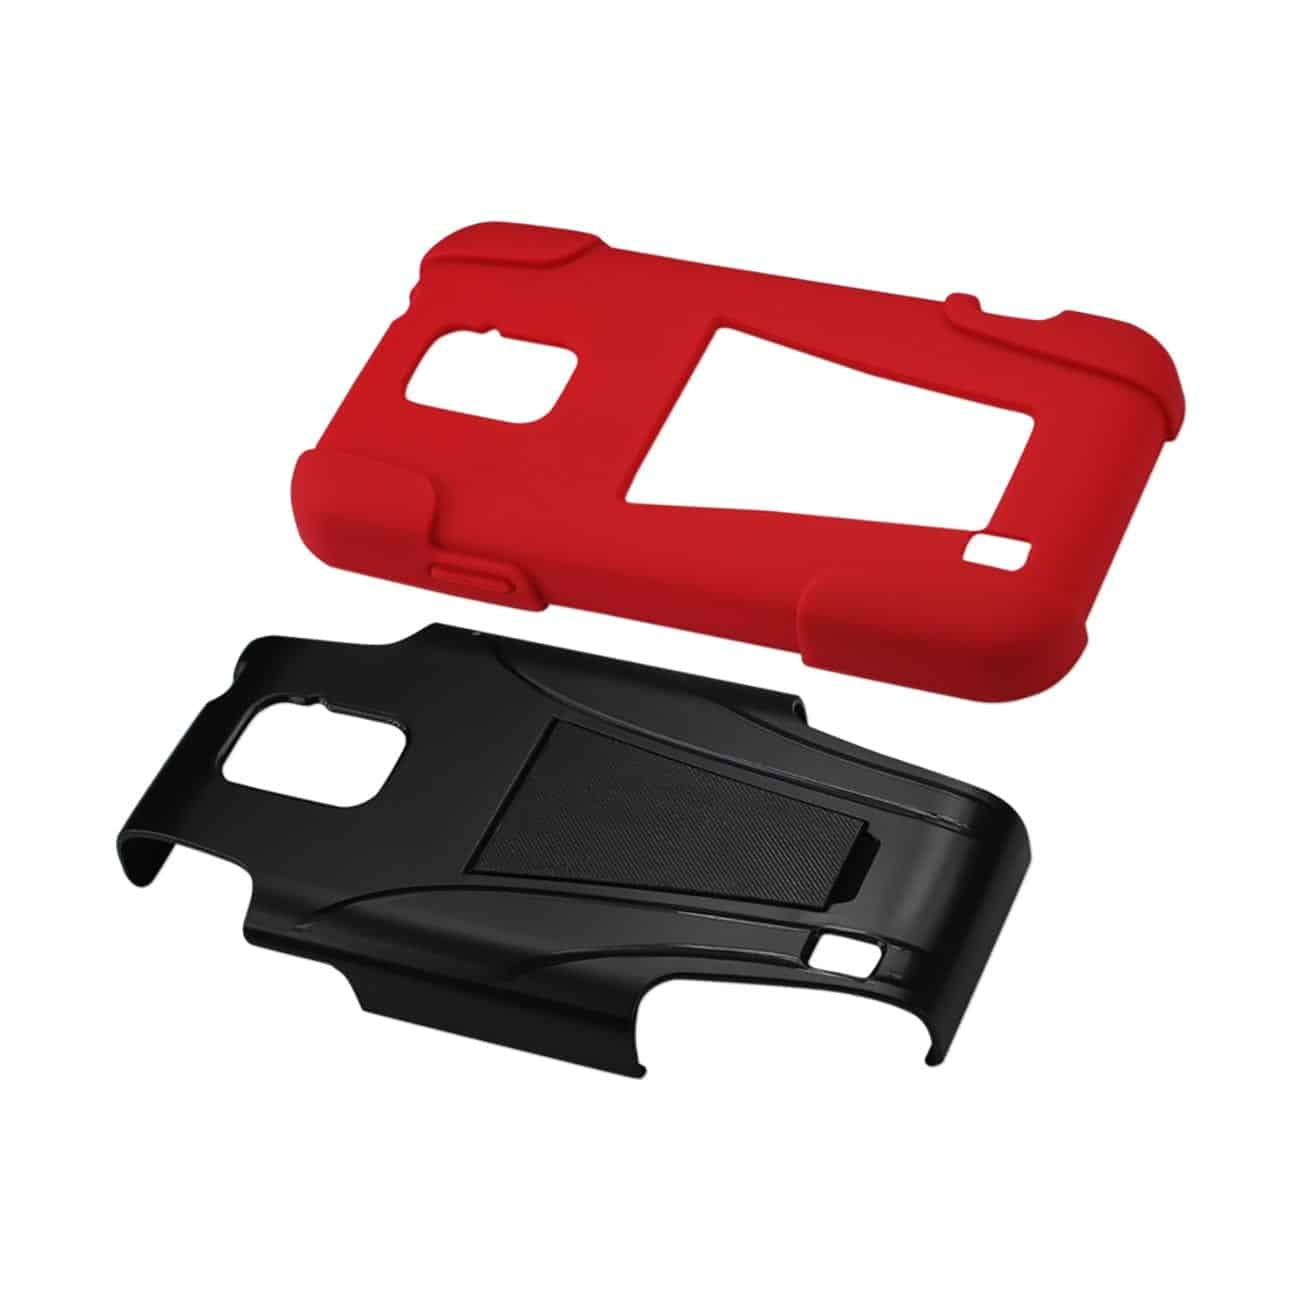 ZTE SOURCE HYBRID HEAVY DUTY CASE WITH KICKSTAND IN RED BLACK